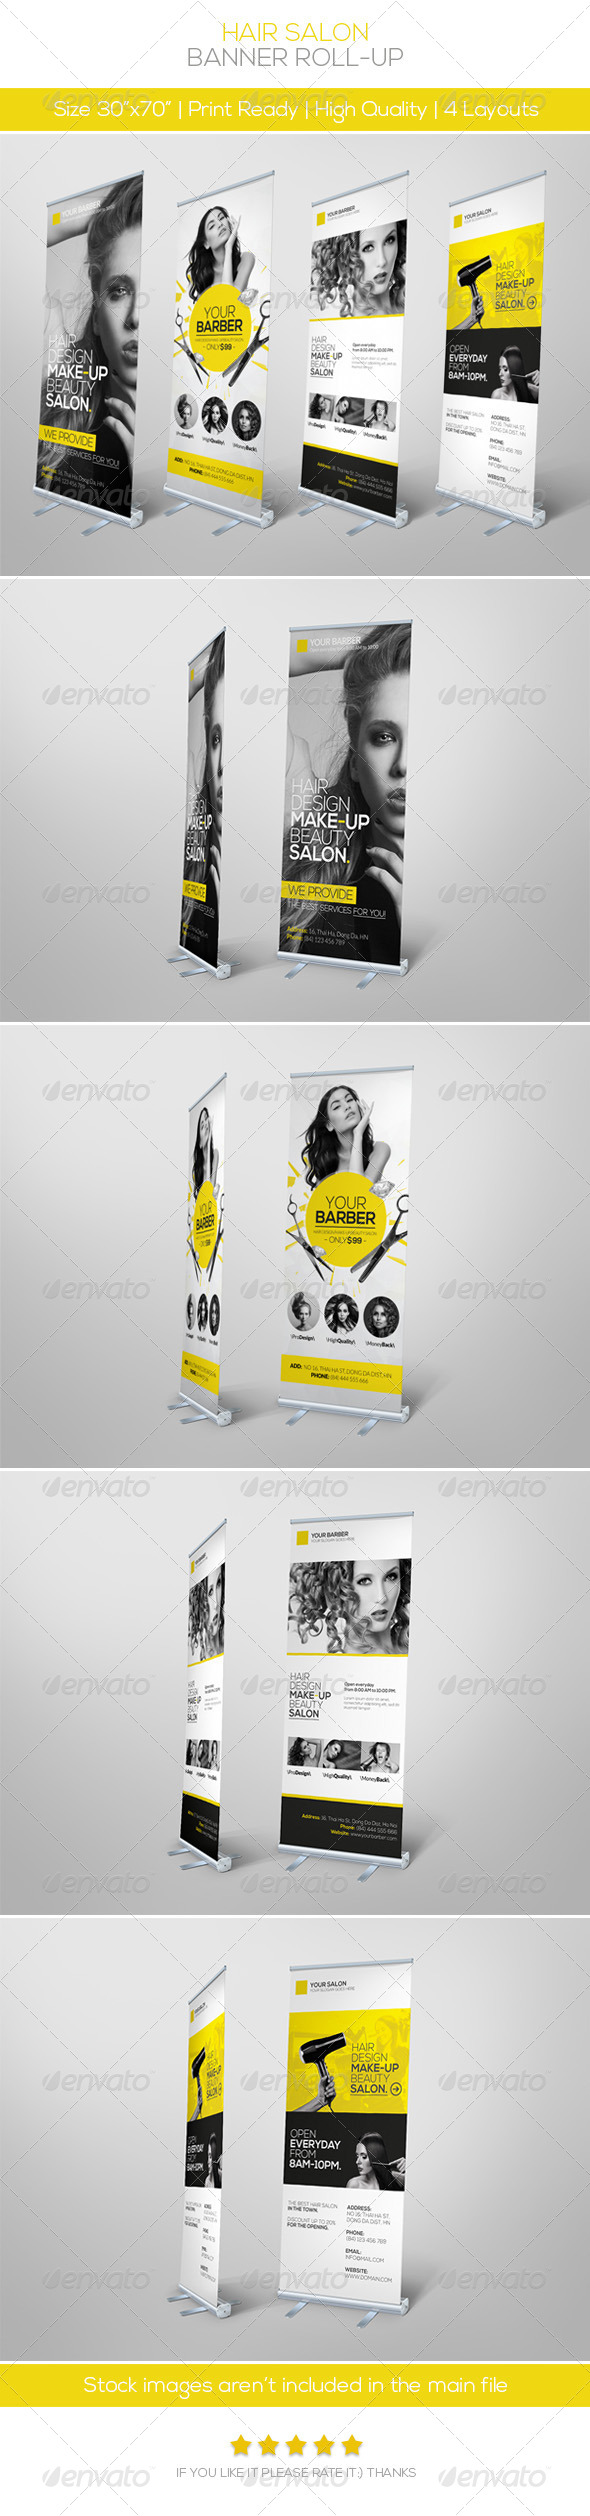 Premium Hair Salon Roll-up Banner - Signage Print Templates